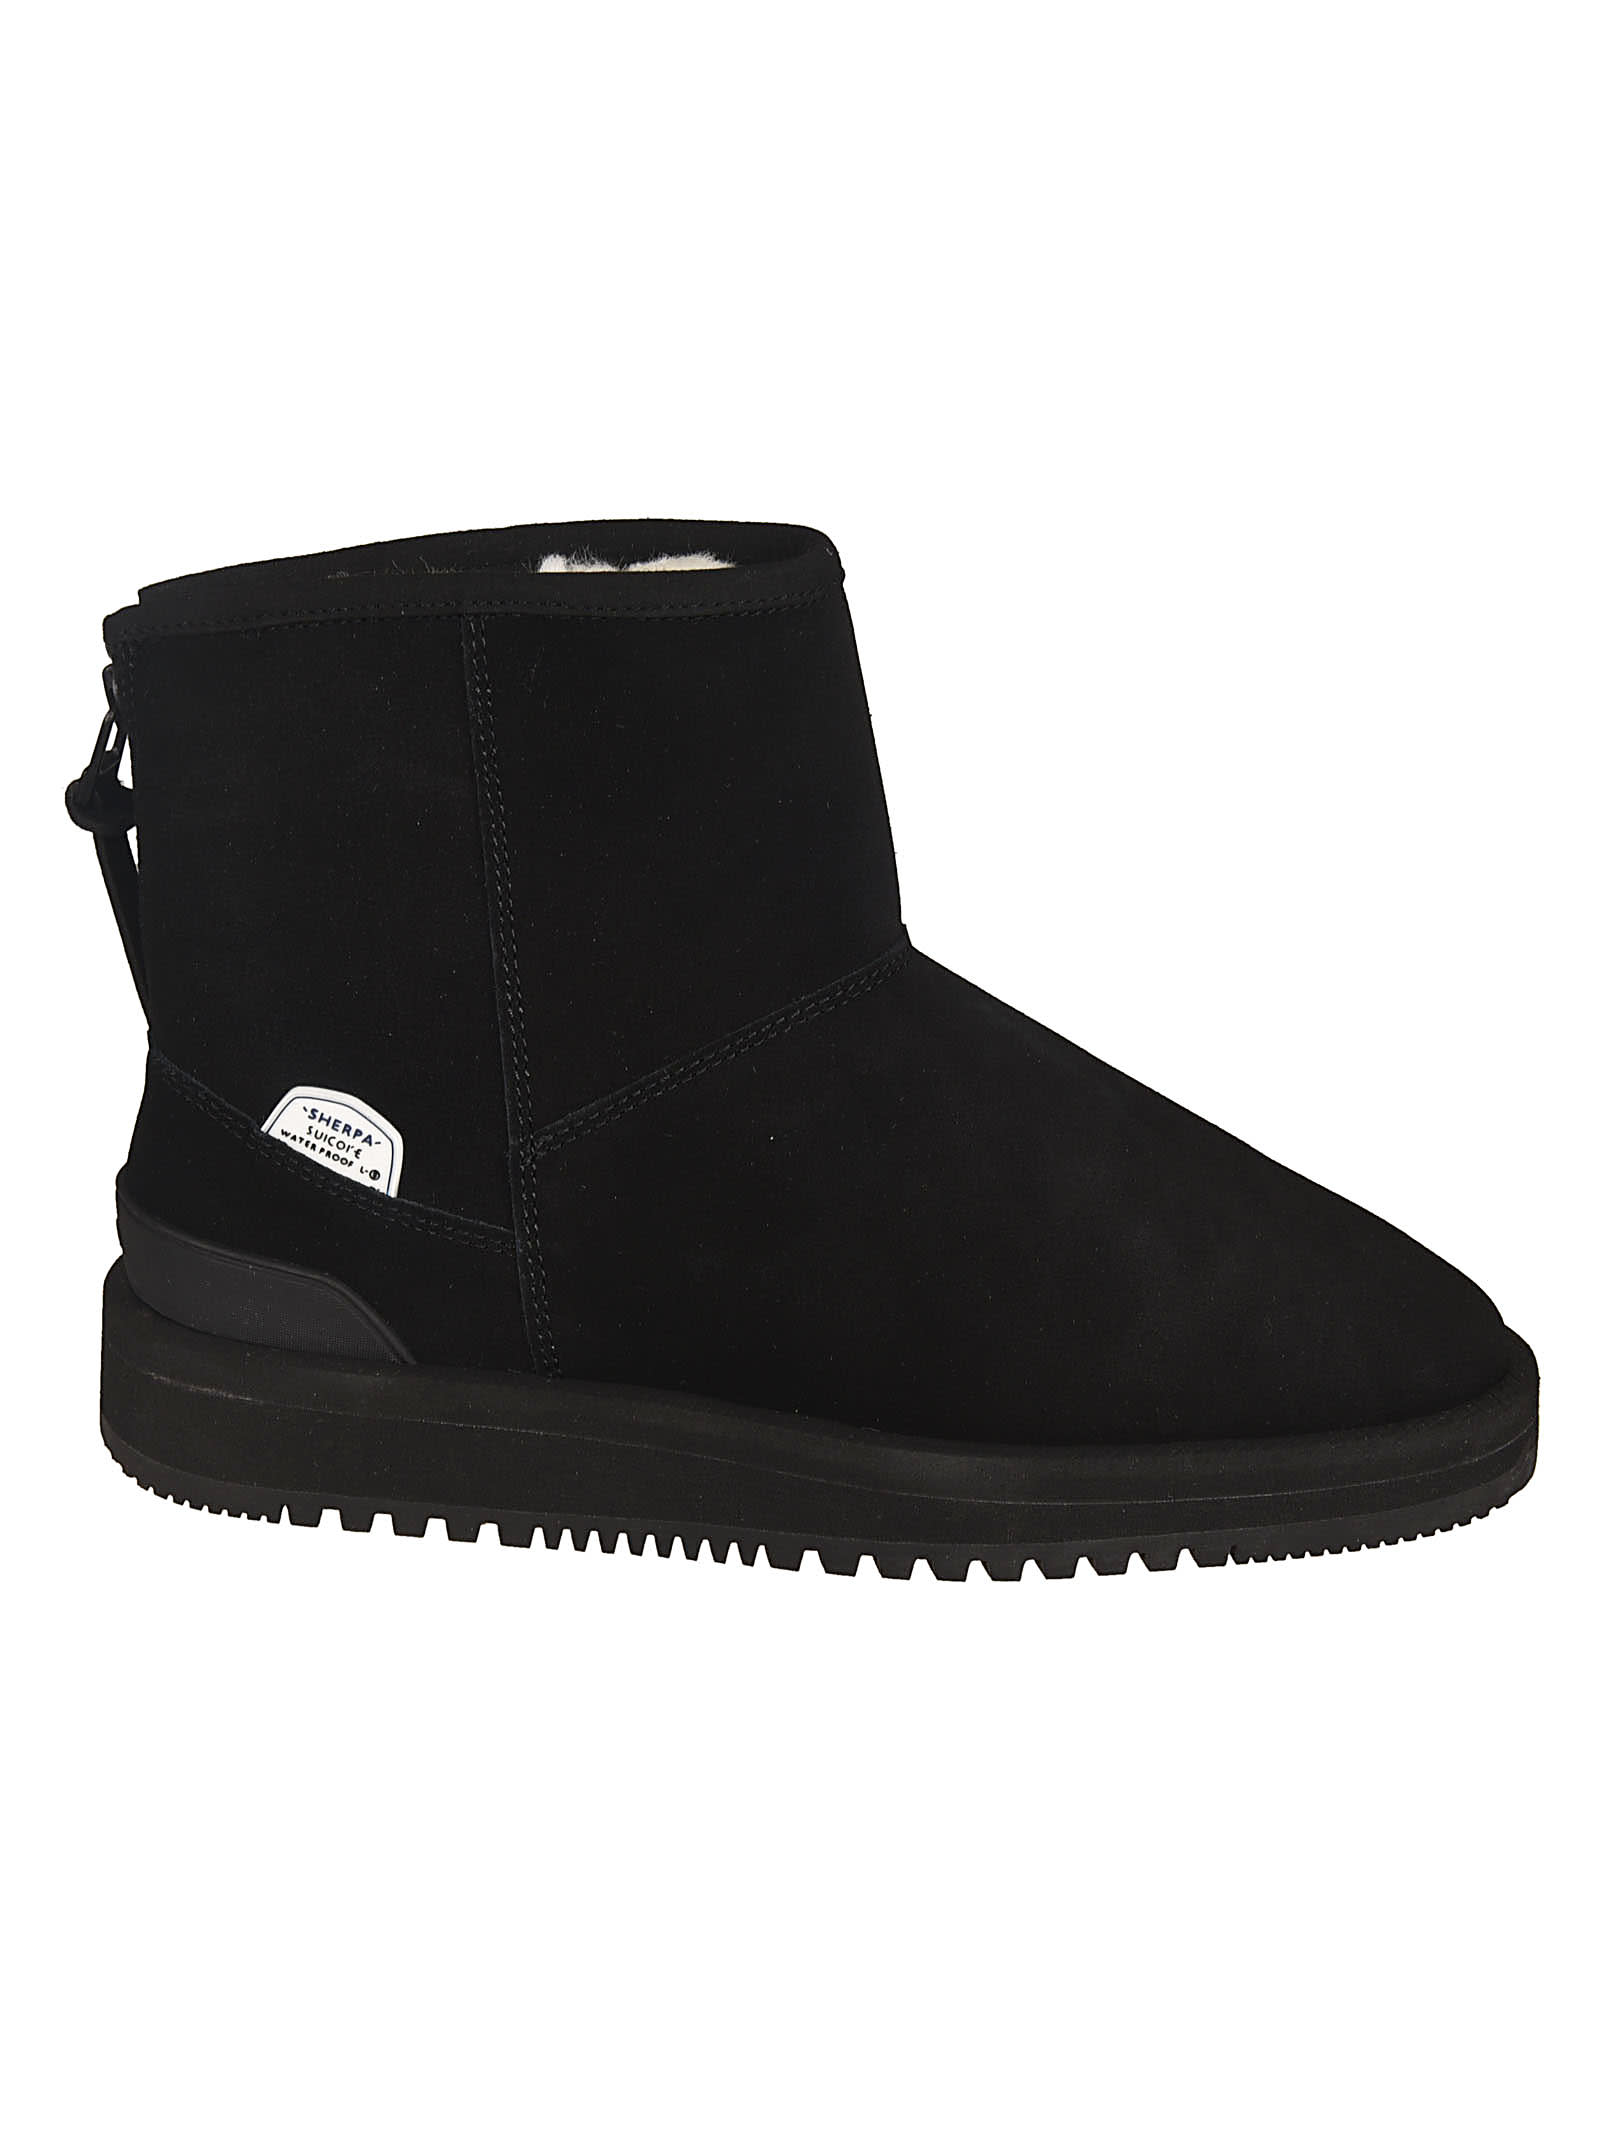 SUICOKE Cleft Toe Ankle Boots